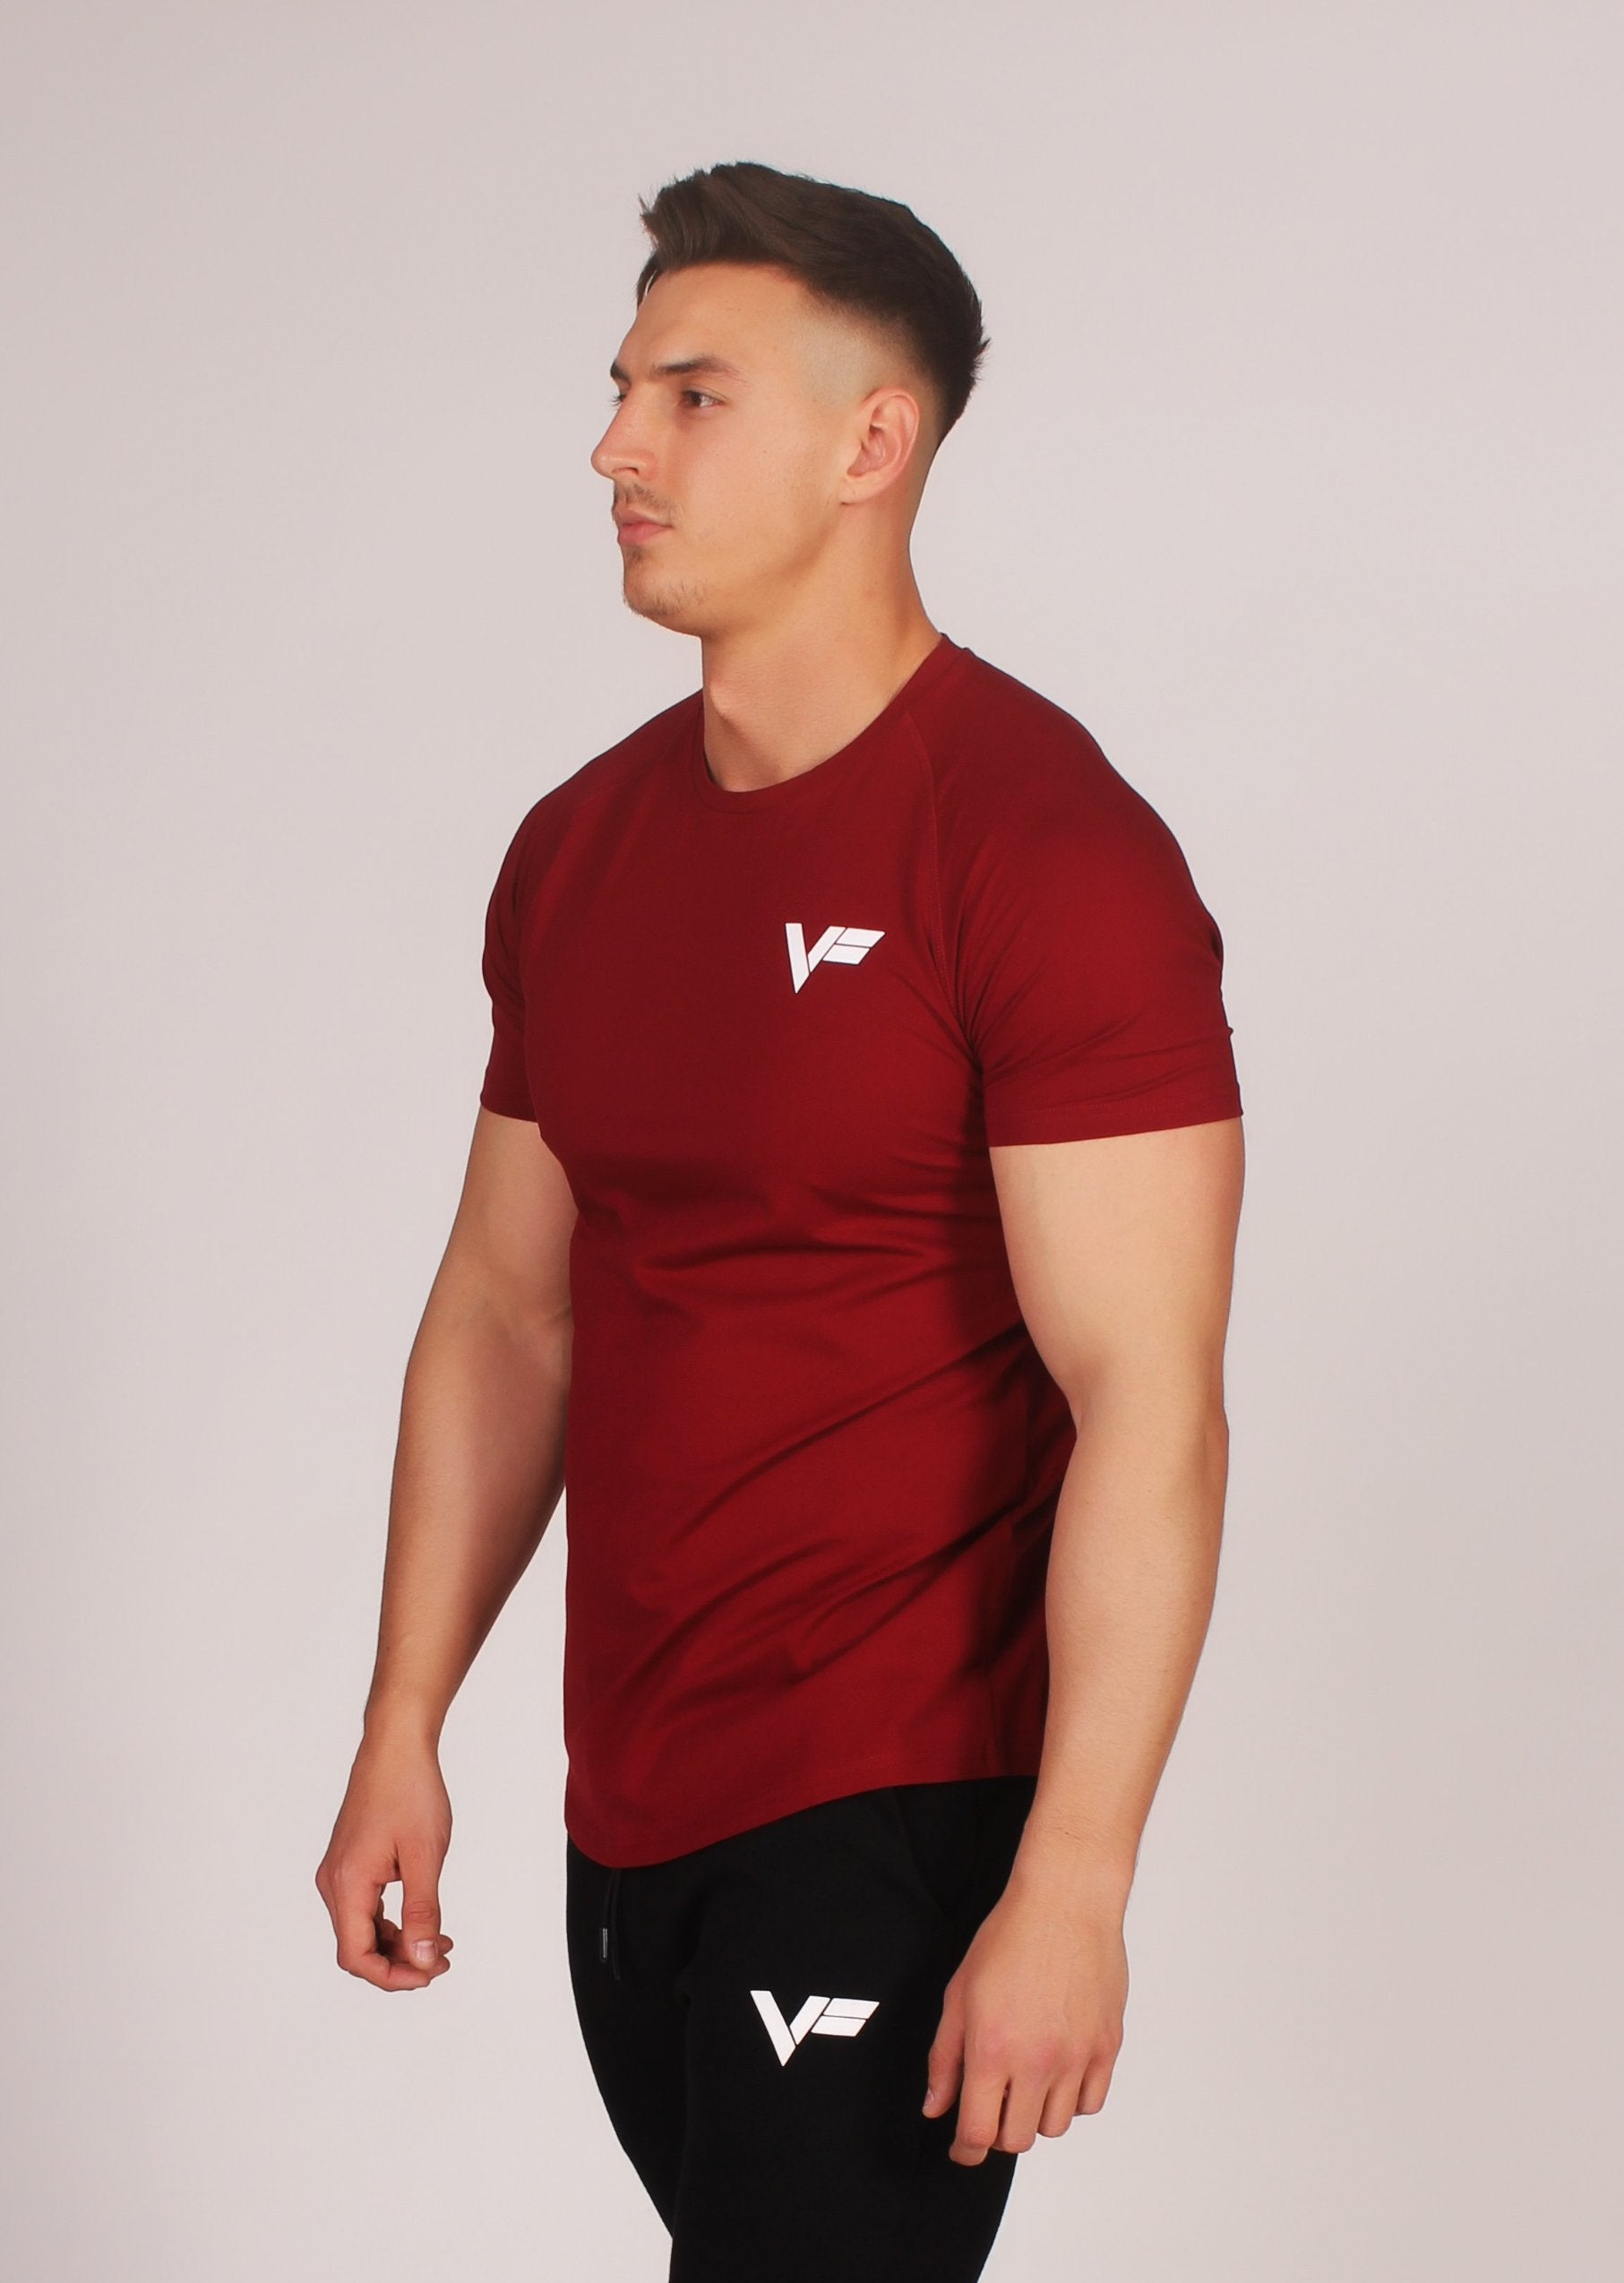 VF Signature T-Shirt - Maroon